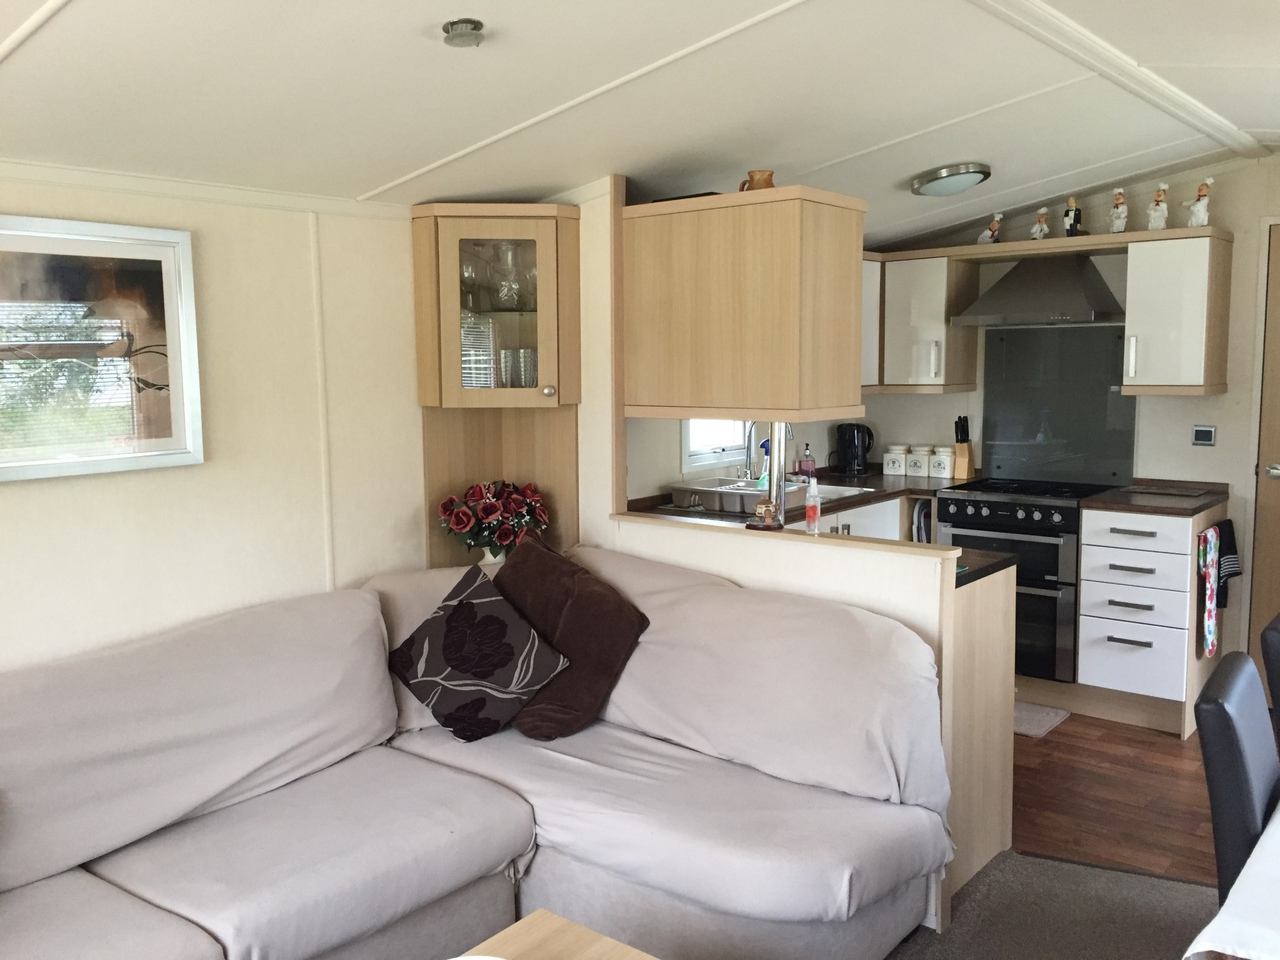 Intertior of Waters Retreat Caravans in Hopton